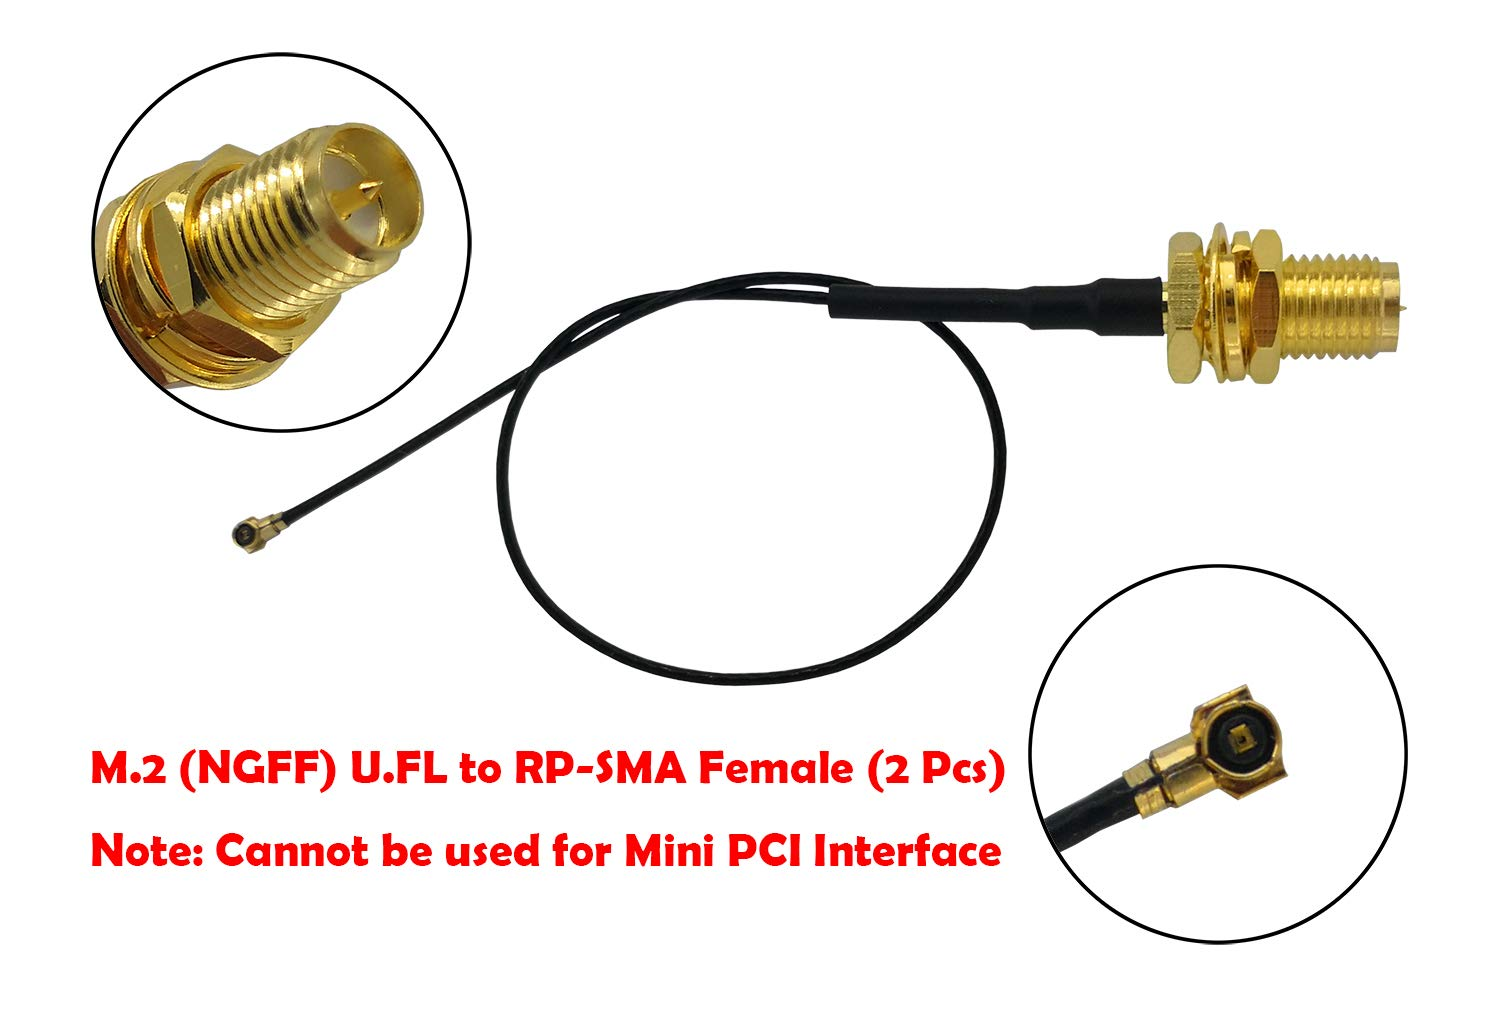 20cm U.FL IPEX MHF4 to RP SMA Female Extension Cable for M.2 NGFF Card Notebook PS4 Drone 1 Pcs WiFi Antenna 8dBi Omni RP-SMA Male 2.4Ghz 5.8Ghz Dual Band